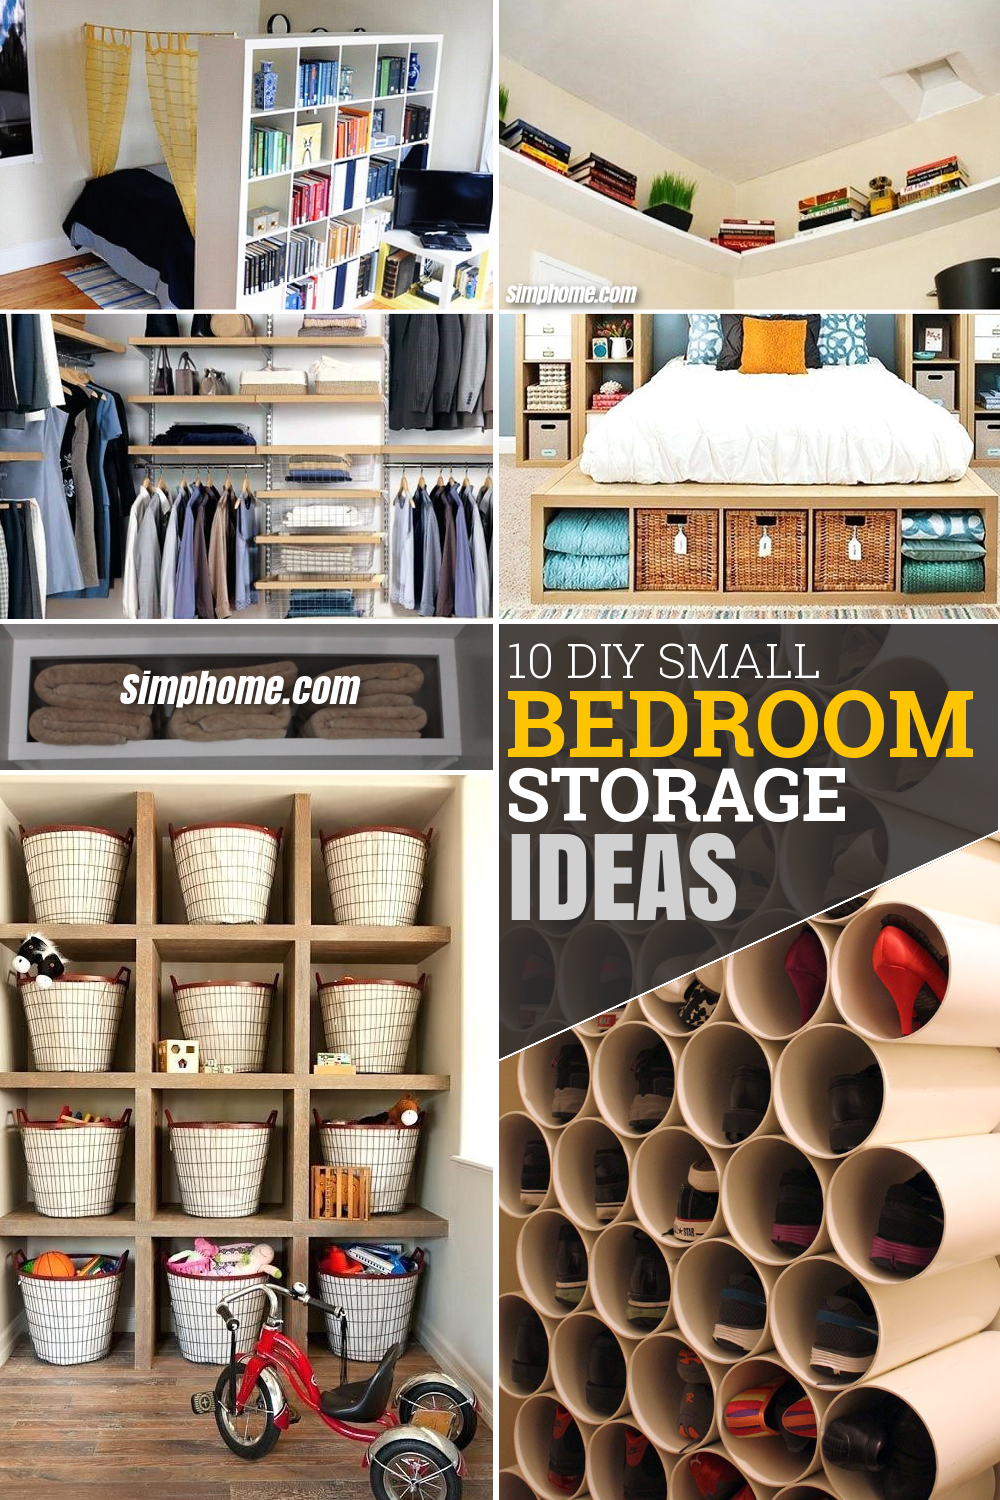 10 DIY Small Bedroom Storage Ideas via Simphome.com Pinterest Featured image